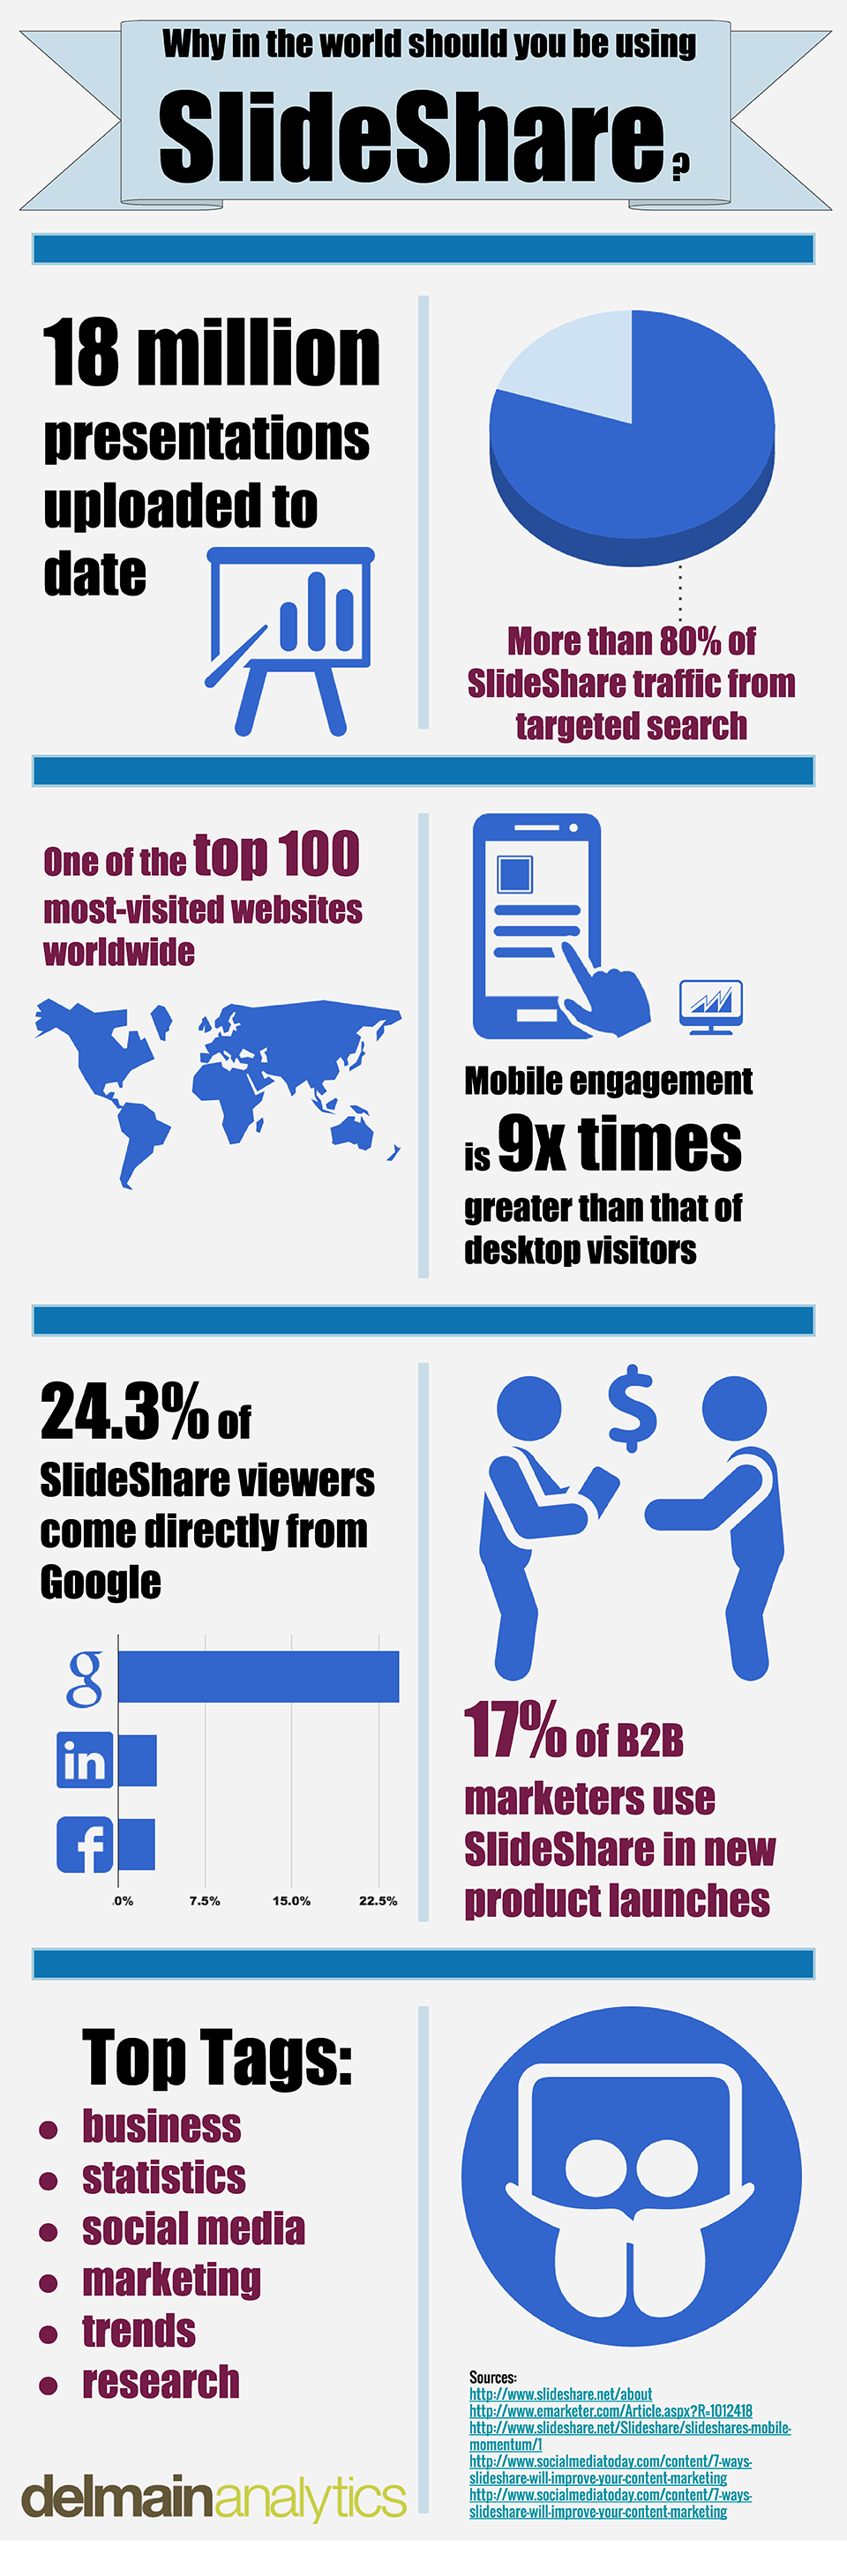 Why Use Slideshare Infographic